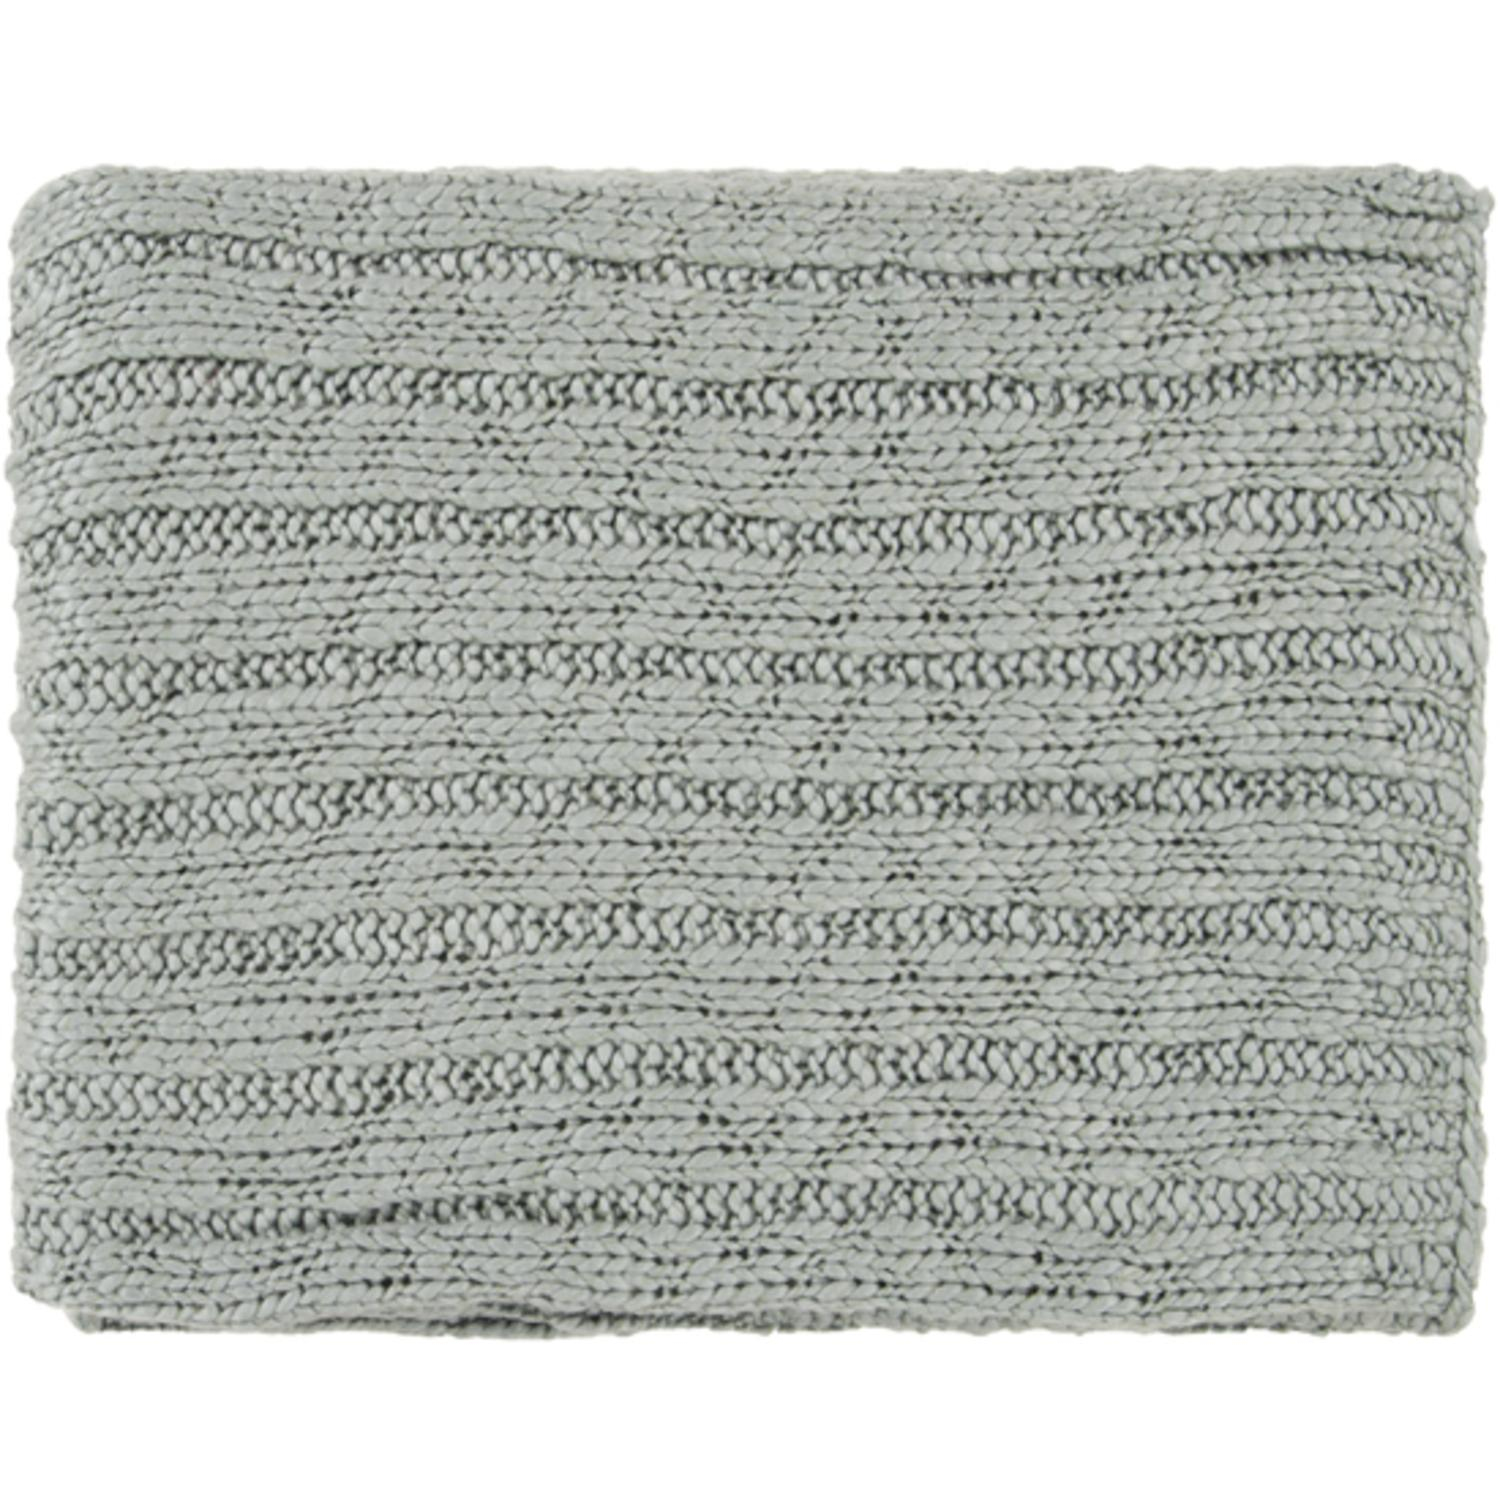 "50"" x 60"" Soft Chic Green-Gray Throw Blanket"